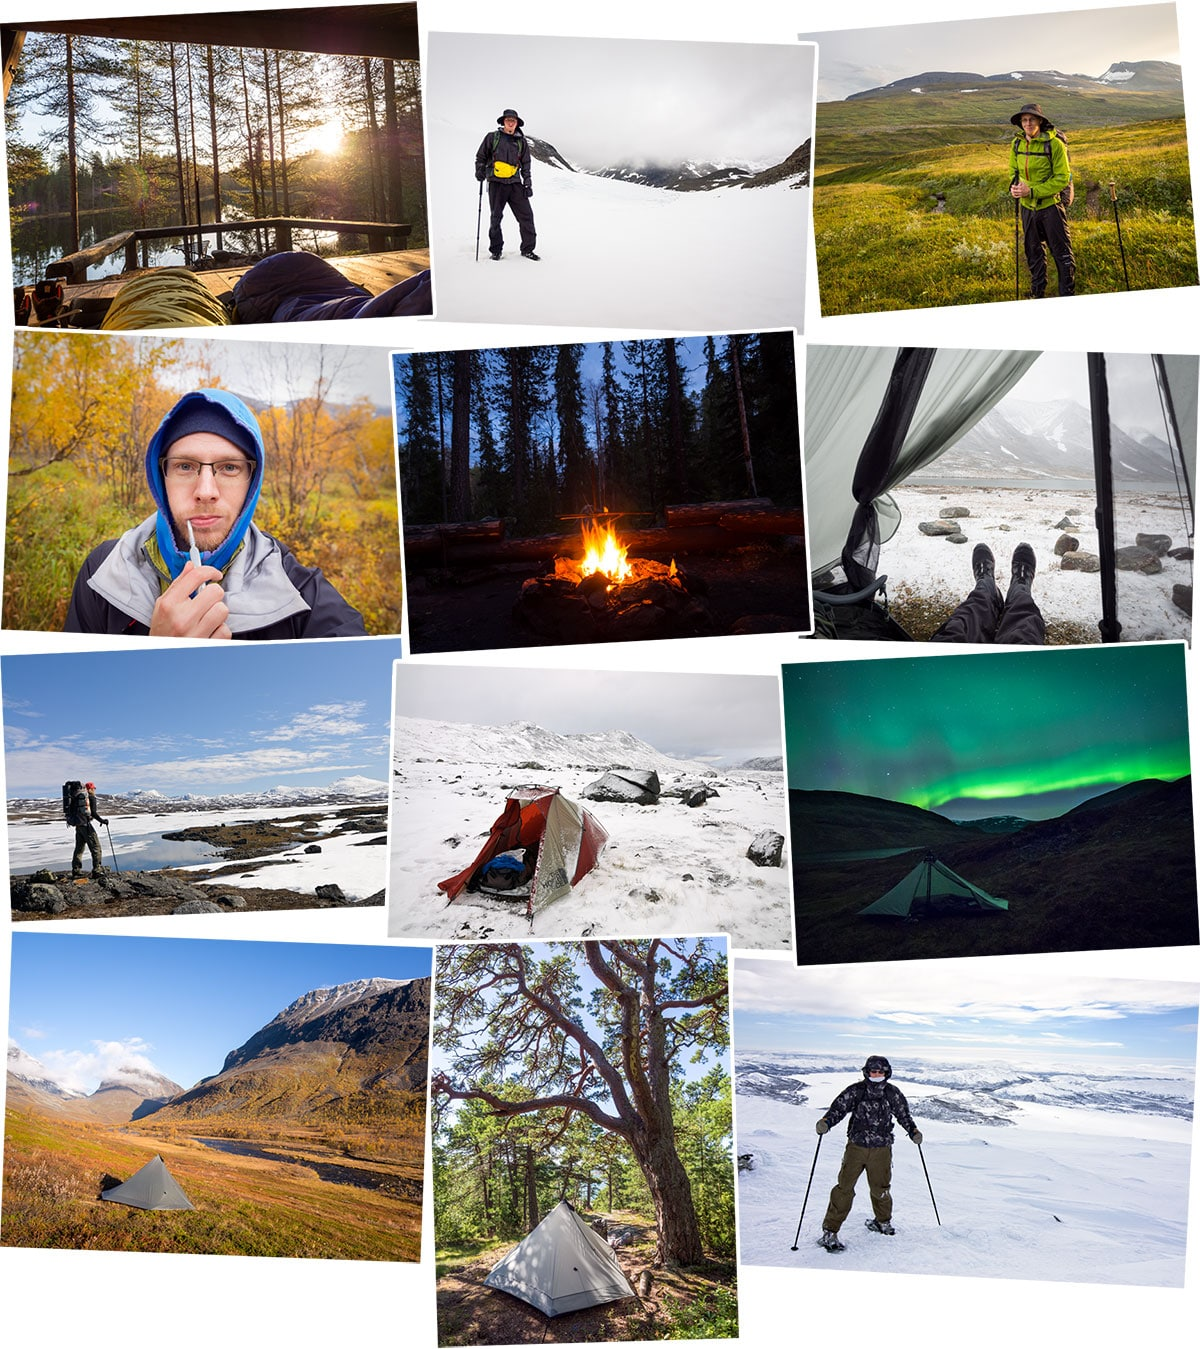 Adventures and hiking in nature, from Southern Finland to Lapland, in national parks and in wilderness. Finland, Sweden, Norway. Part 2 of 2.